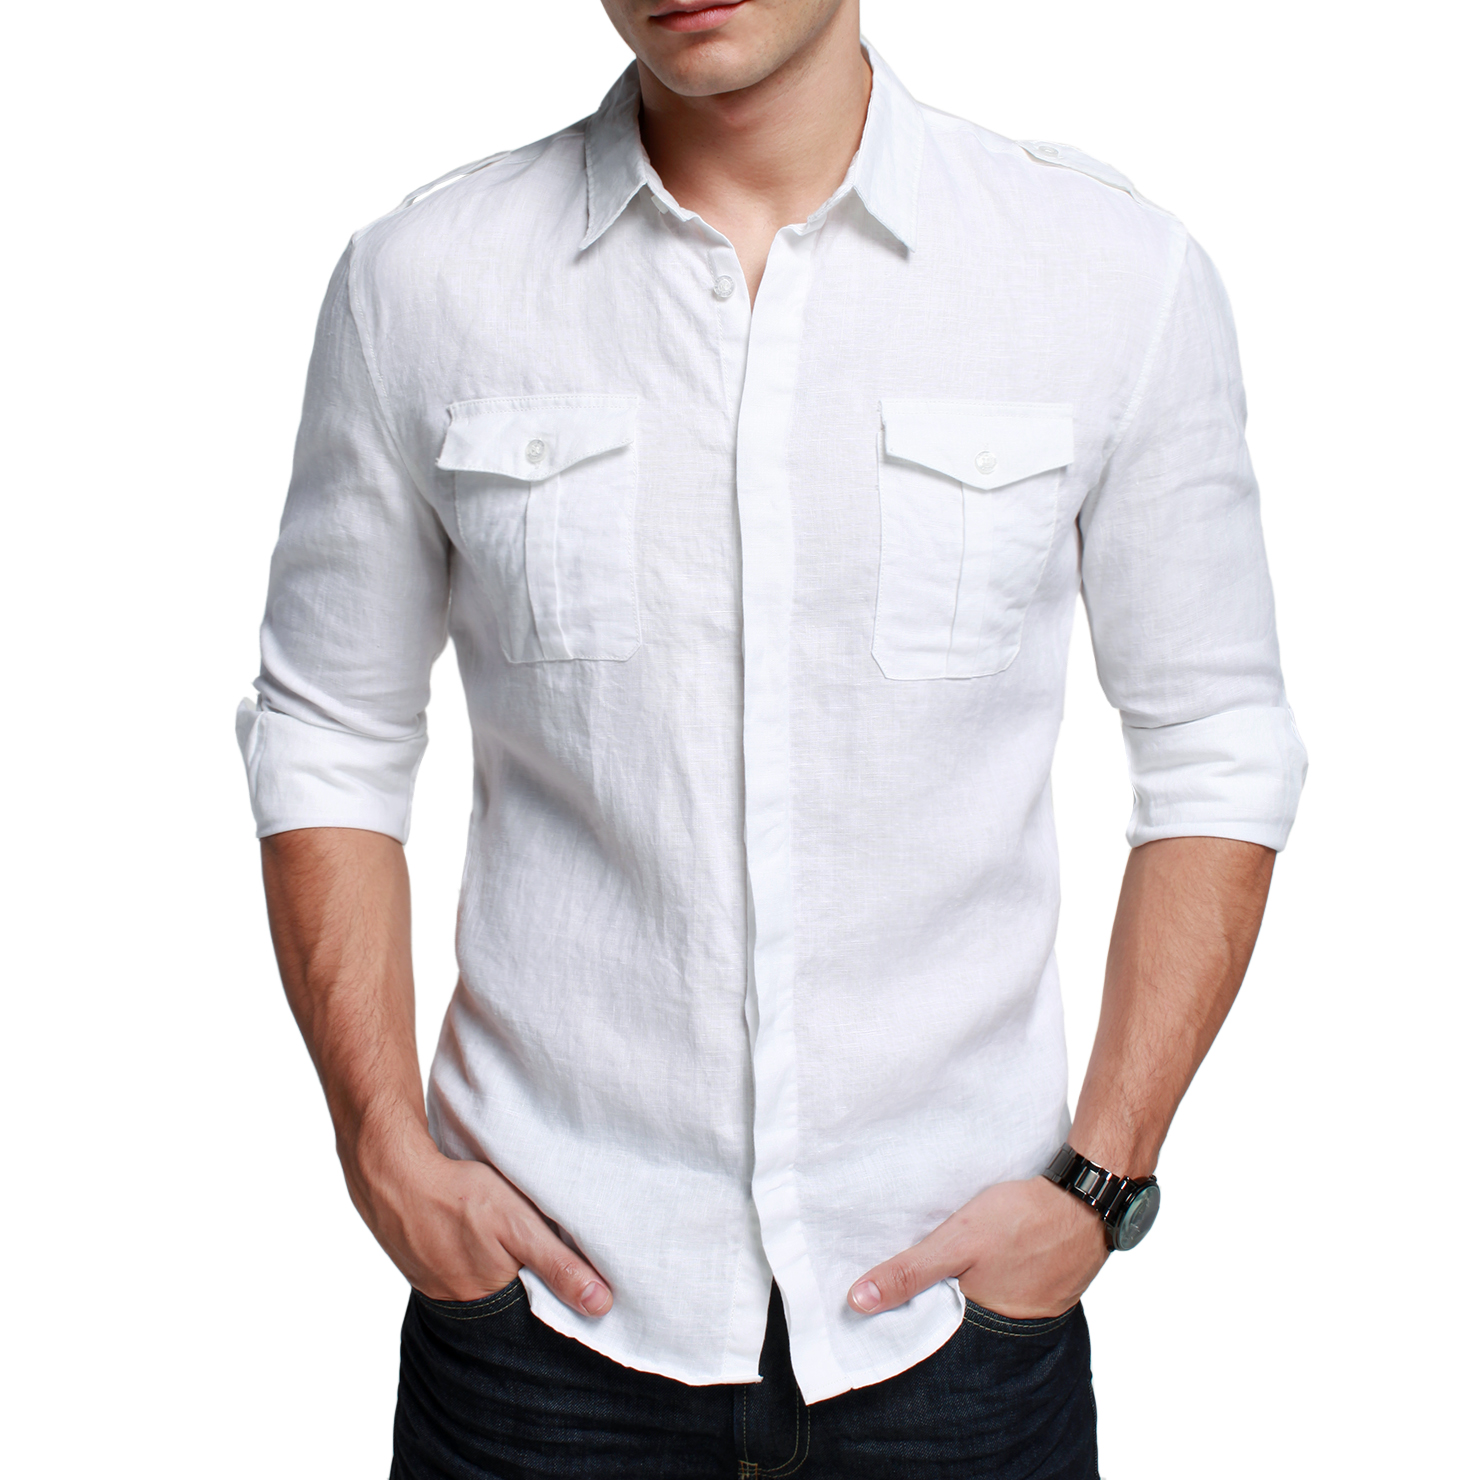 Free shipping on Men's button-up and dress shirts, non-iron, casual, flannel and plaid shirts for men. Free shipping and returns on men's shirts at litastmaterlo.gq